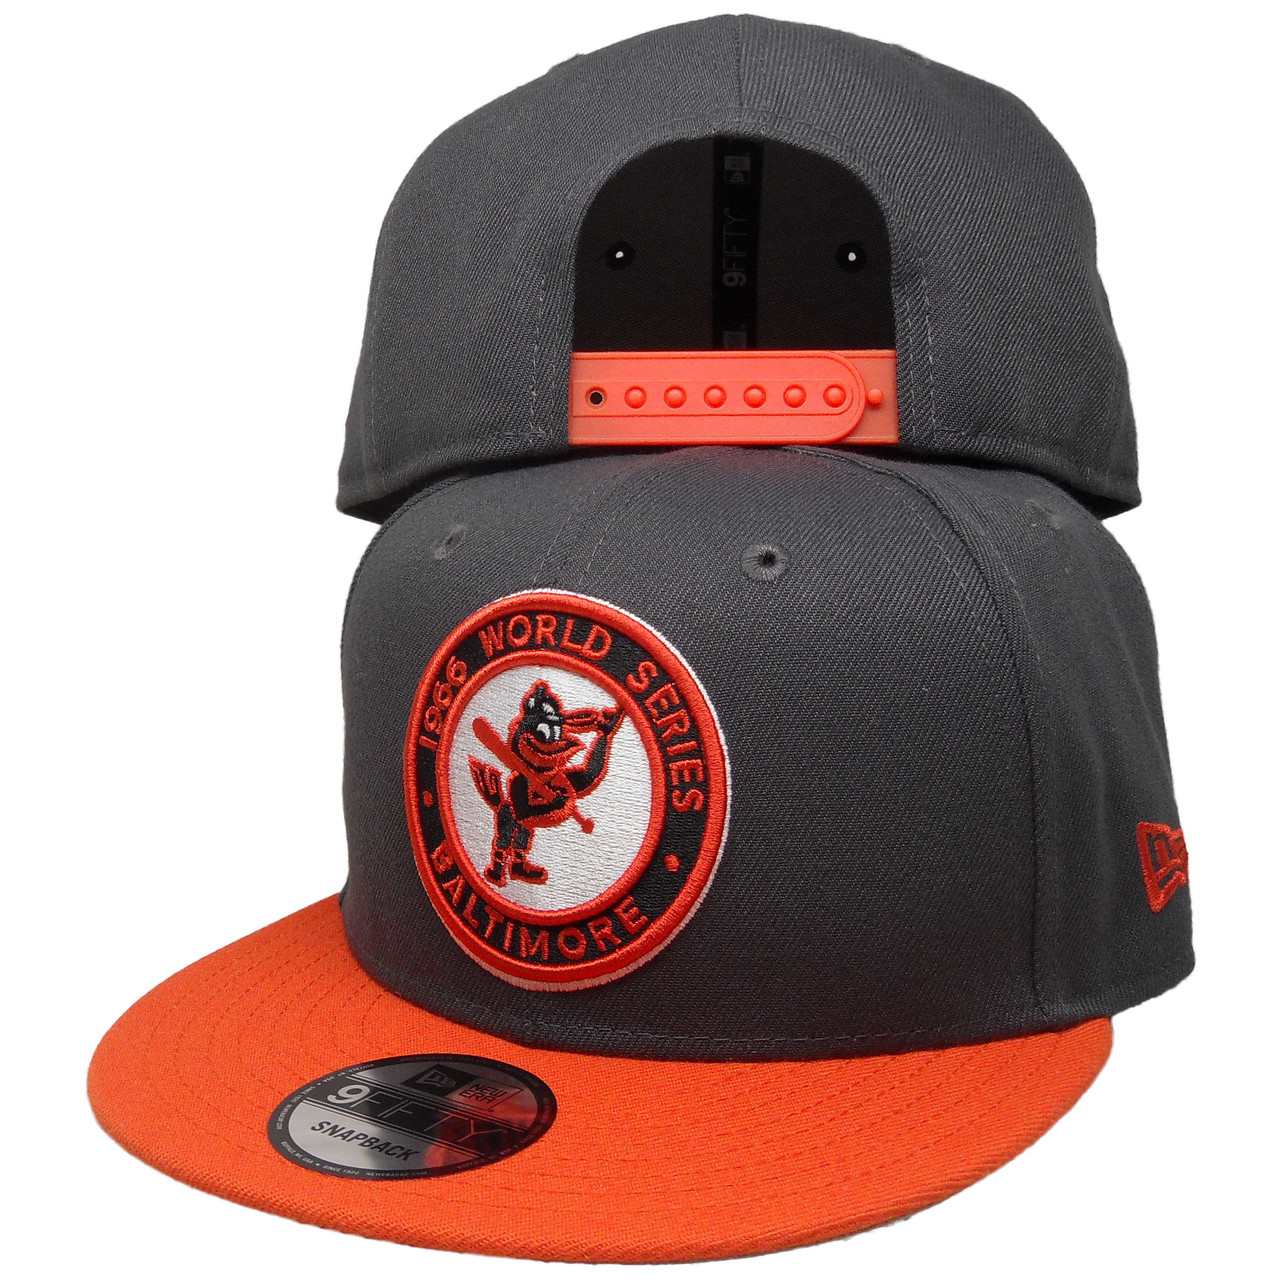 new arrival fbe97 d1710 Baltimore Orioles 1966 WS New Era Custom 9Fifty Snapback - Charcoal,  Orange, White - ECapsUnlimited.com